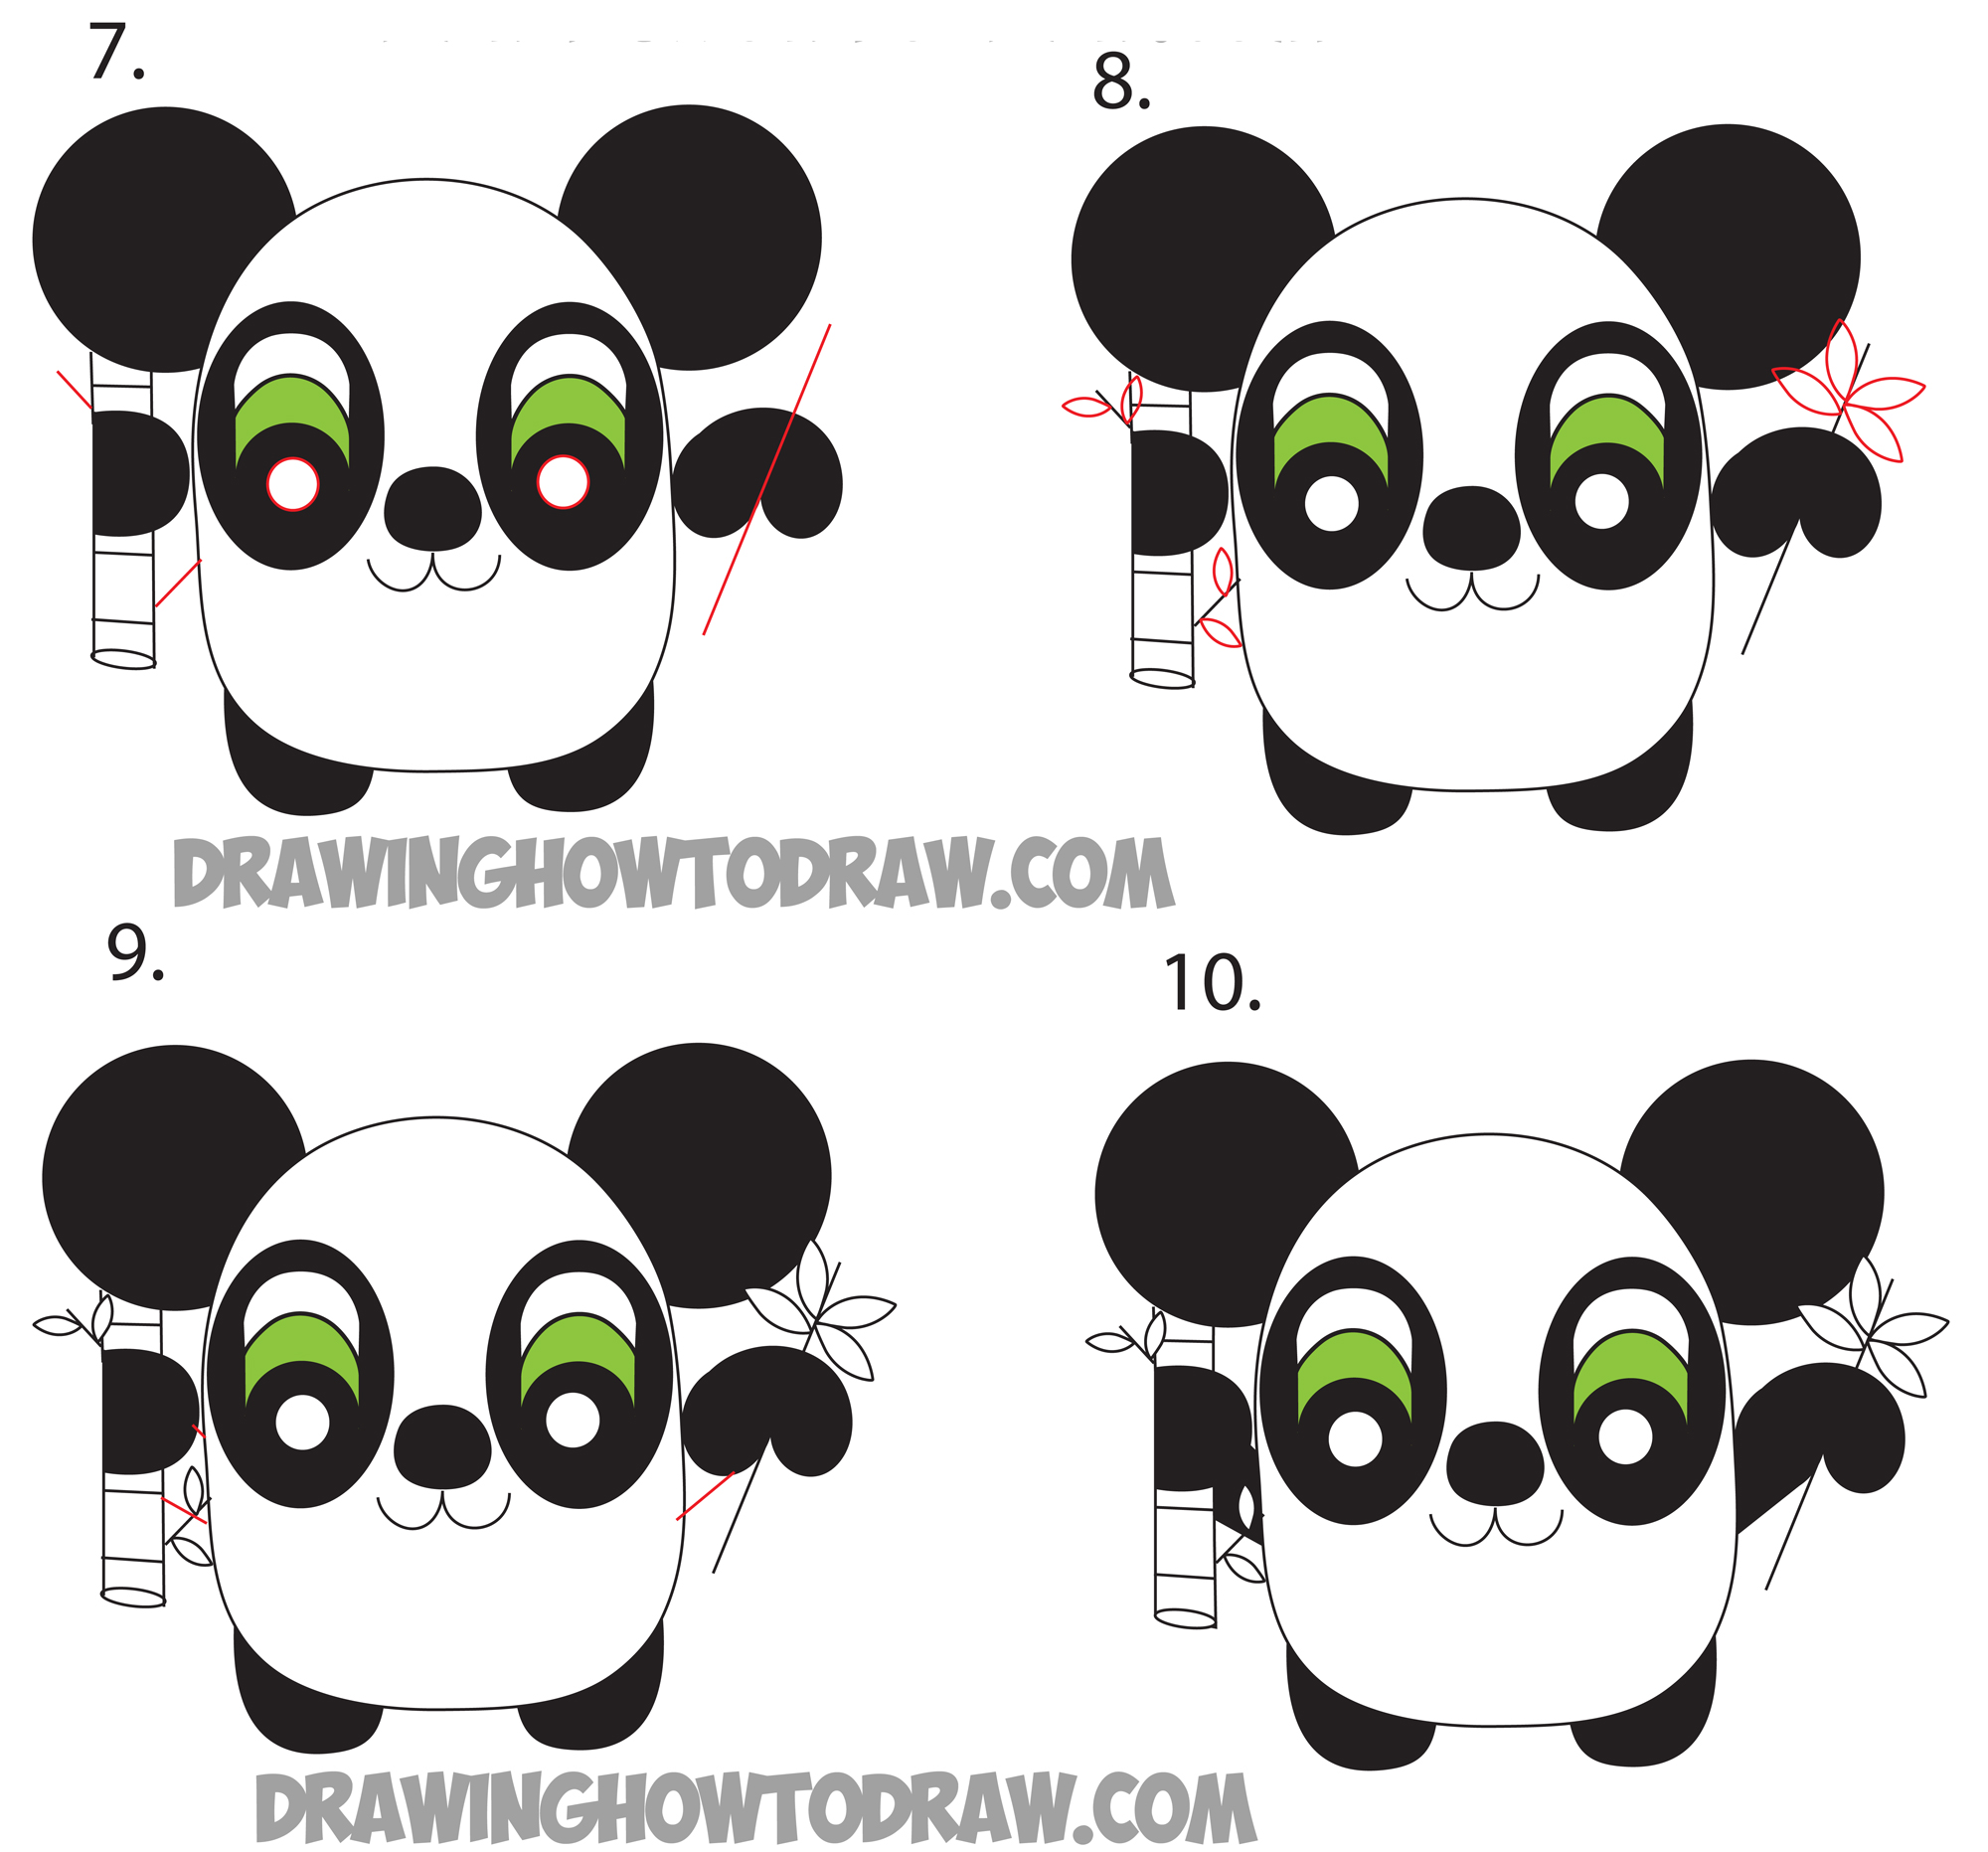 How to Draw Cartoon Pandas from the Word Panda Step by